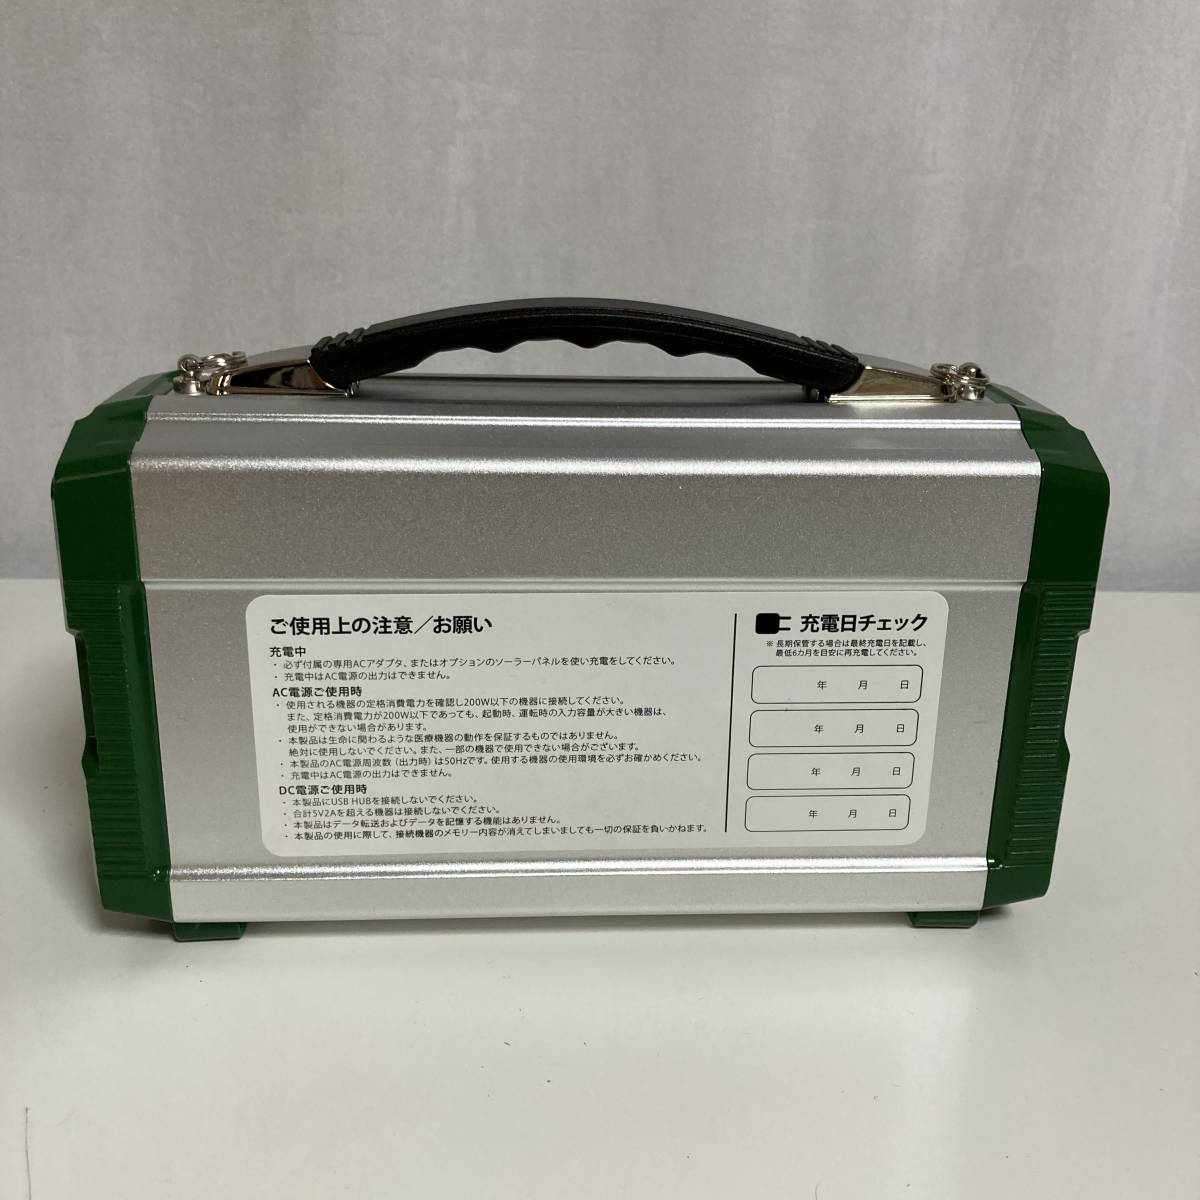 for emergency power supply portable power supply Energie * Pro mini LB-200 home use . battery portable . battery outdoor camp sleeping area in the vehicle disaster prevention